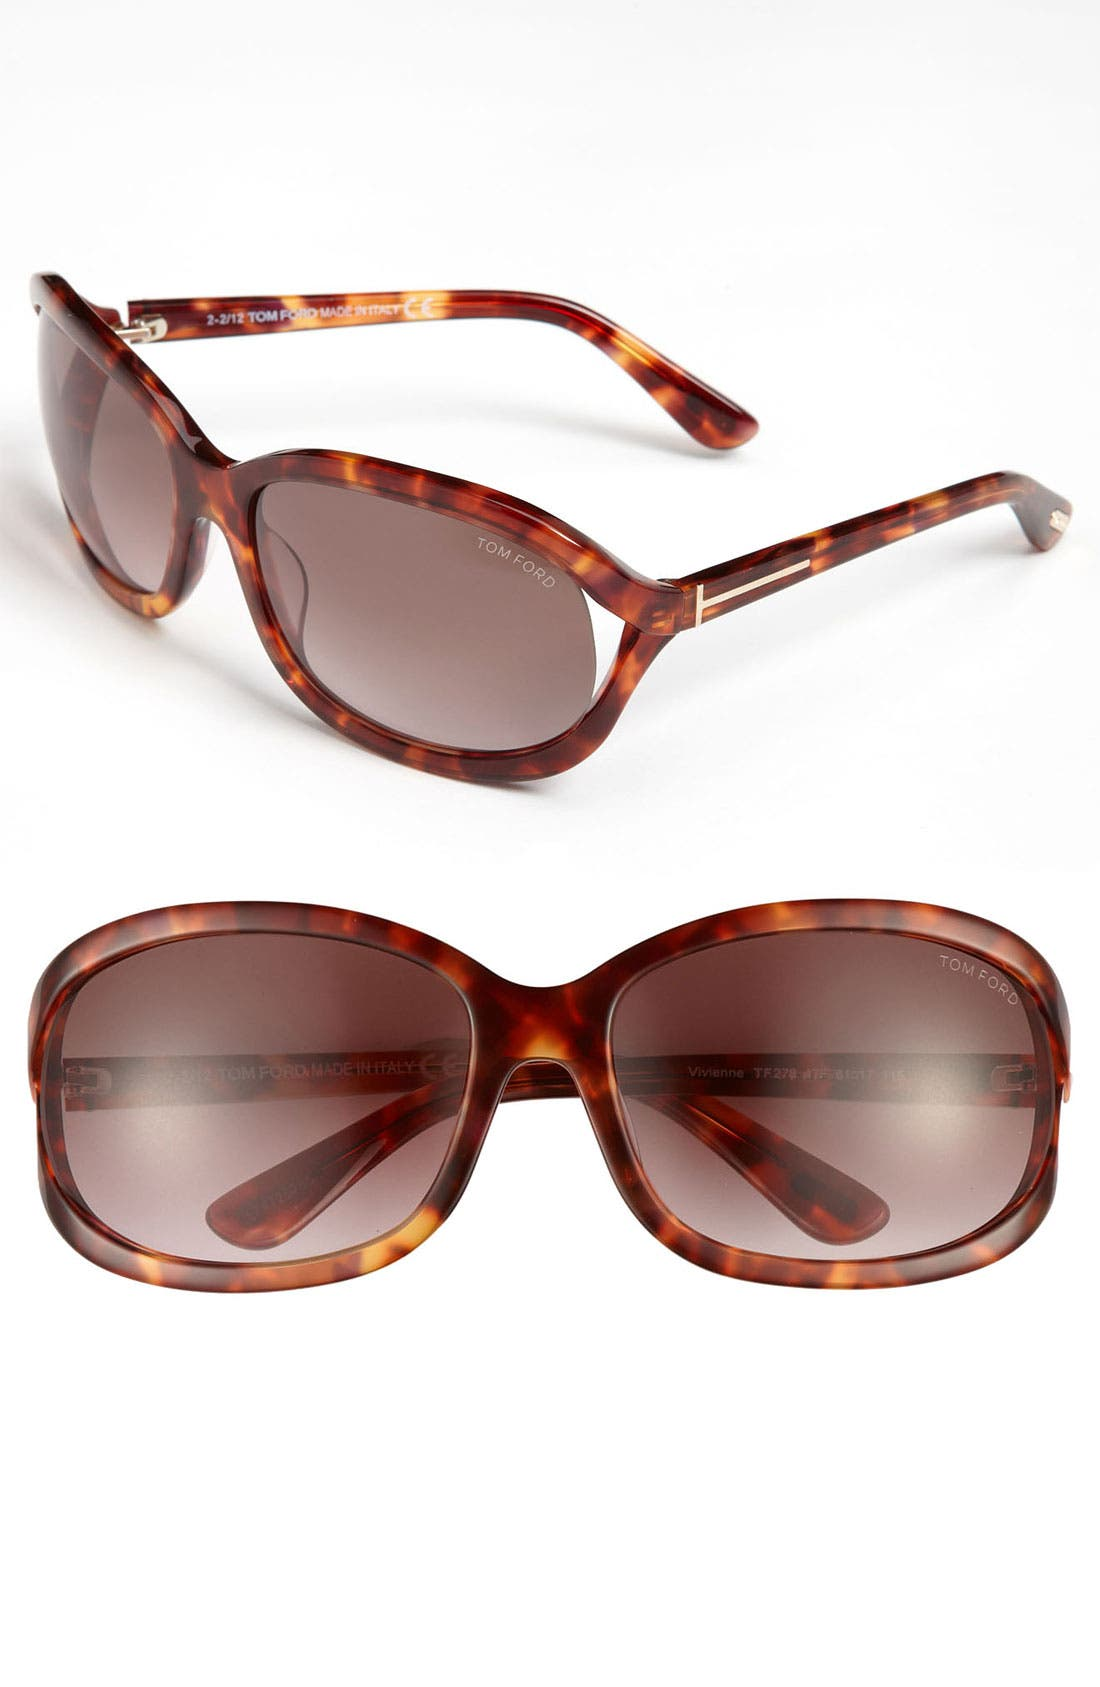 Main Image - Tom Ford 'Vivienne' 61mm Sunglasses